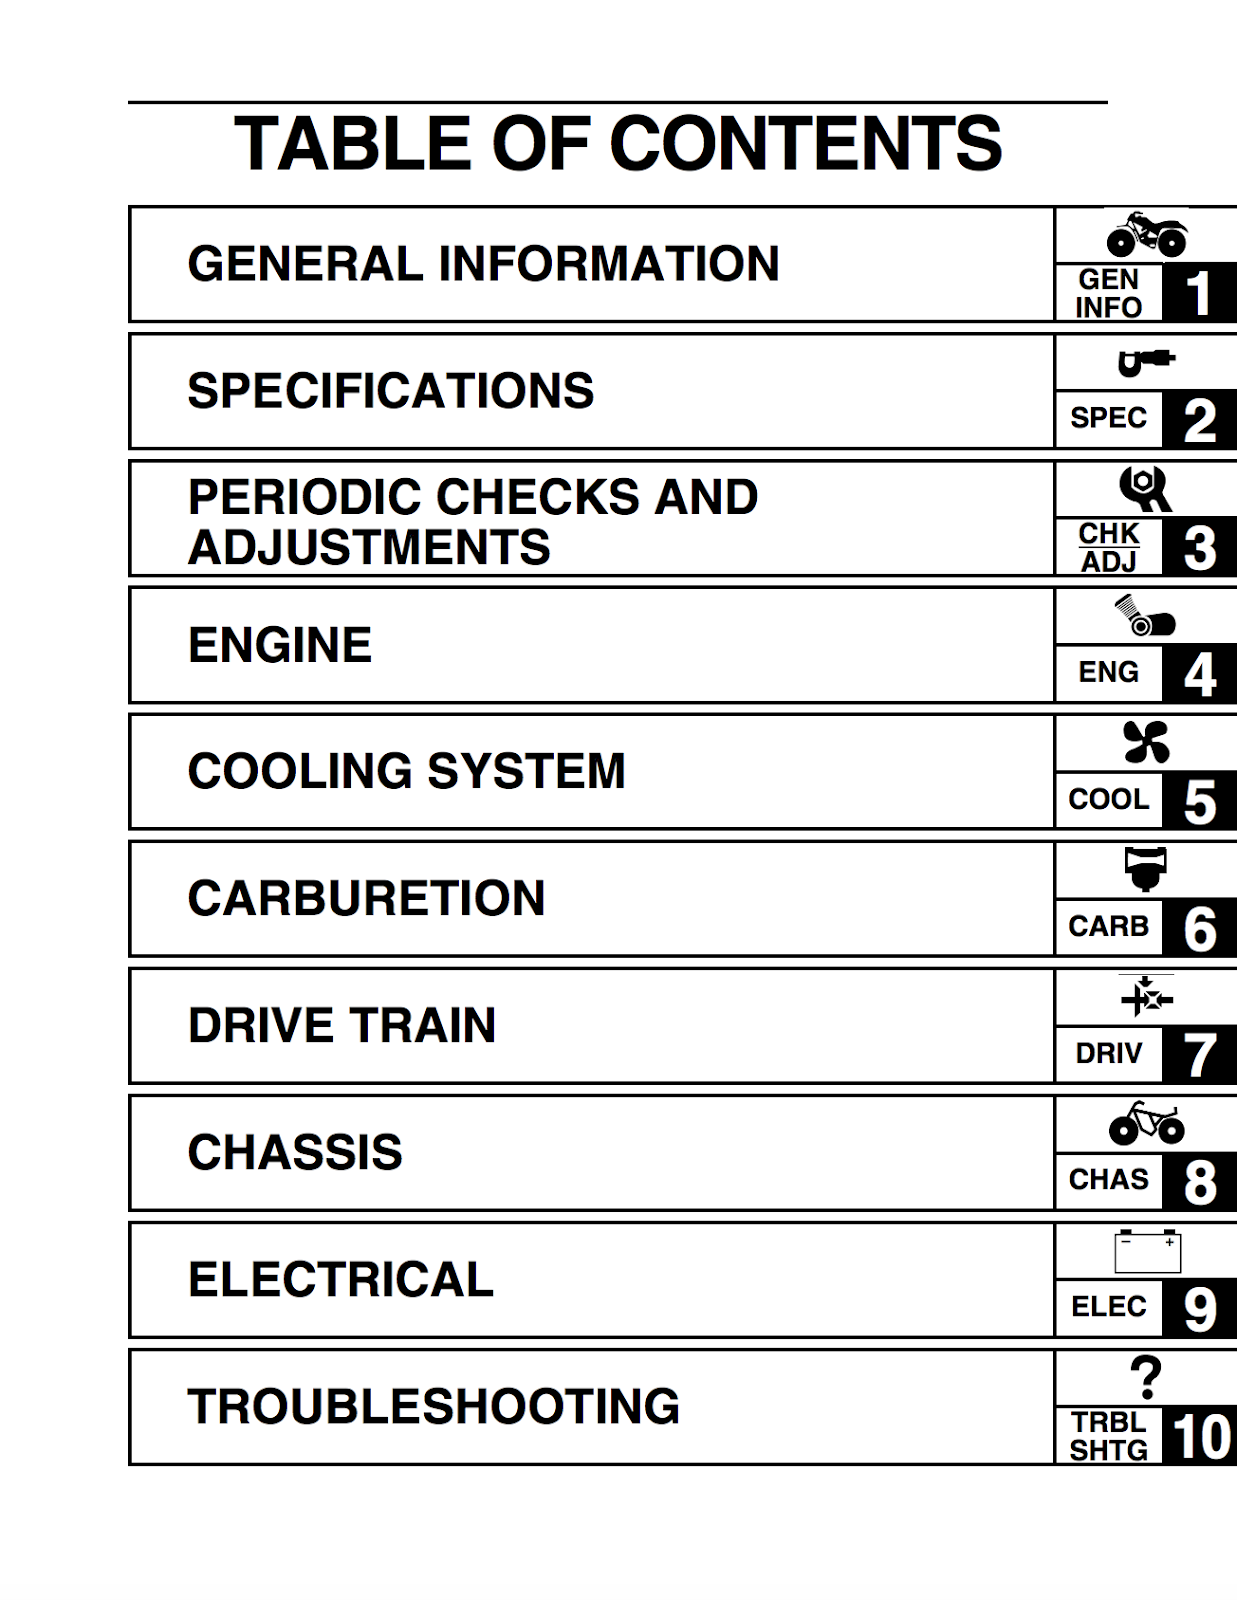 hight resolution of table of contents from yamaha kodiak 400 service manual